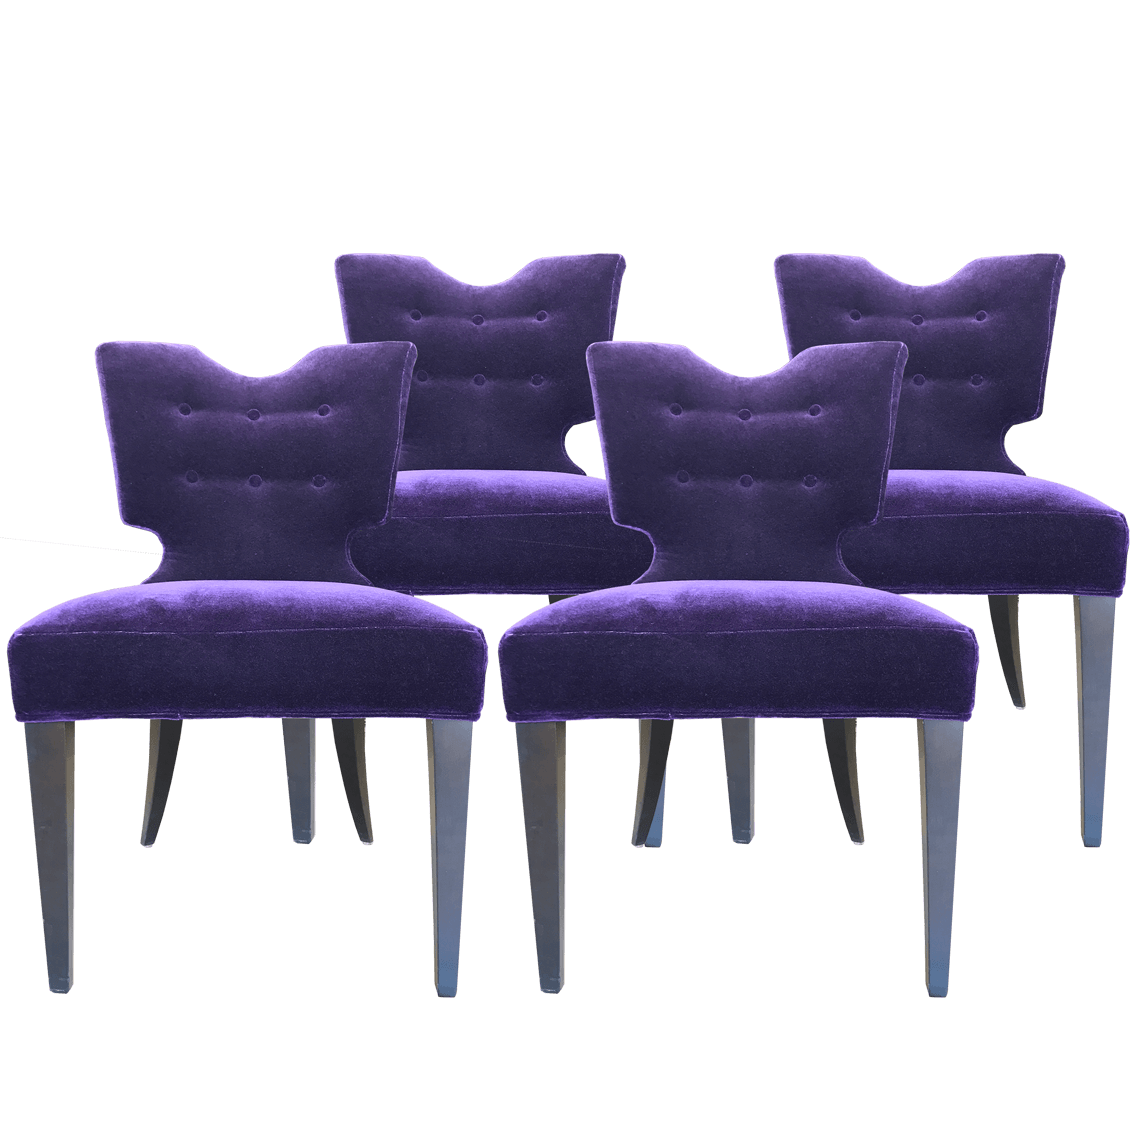 DwellStudio Purple Velvet Dining Chair Set of 4